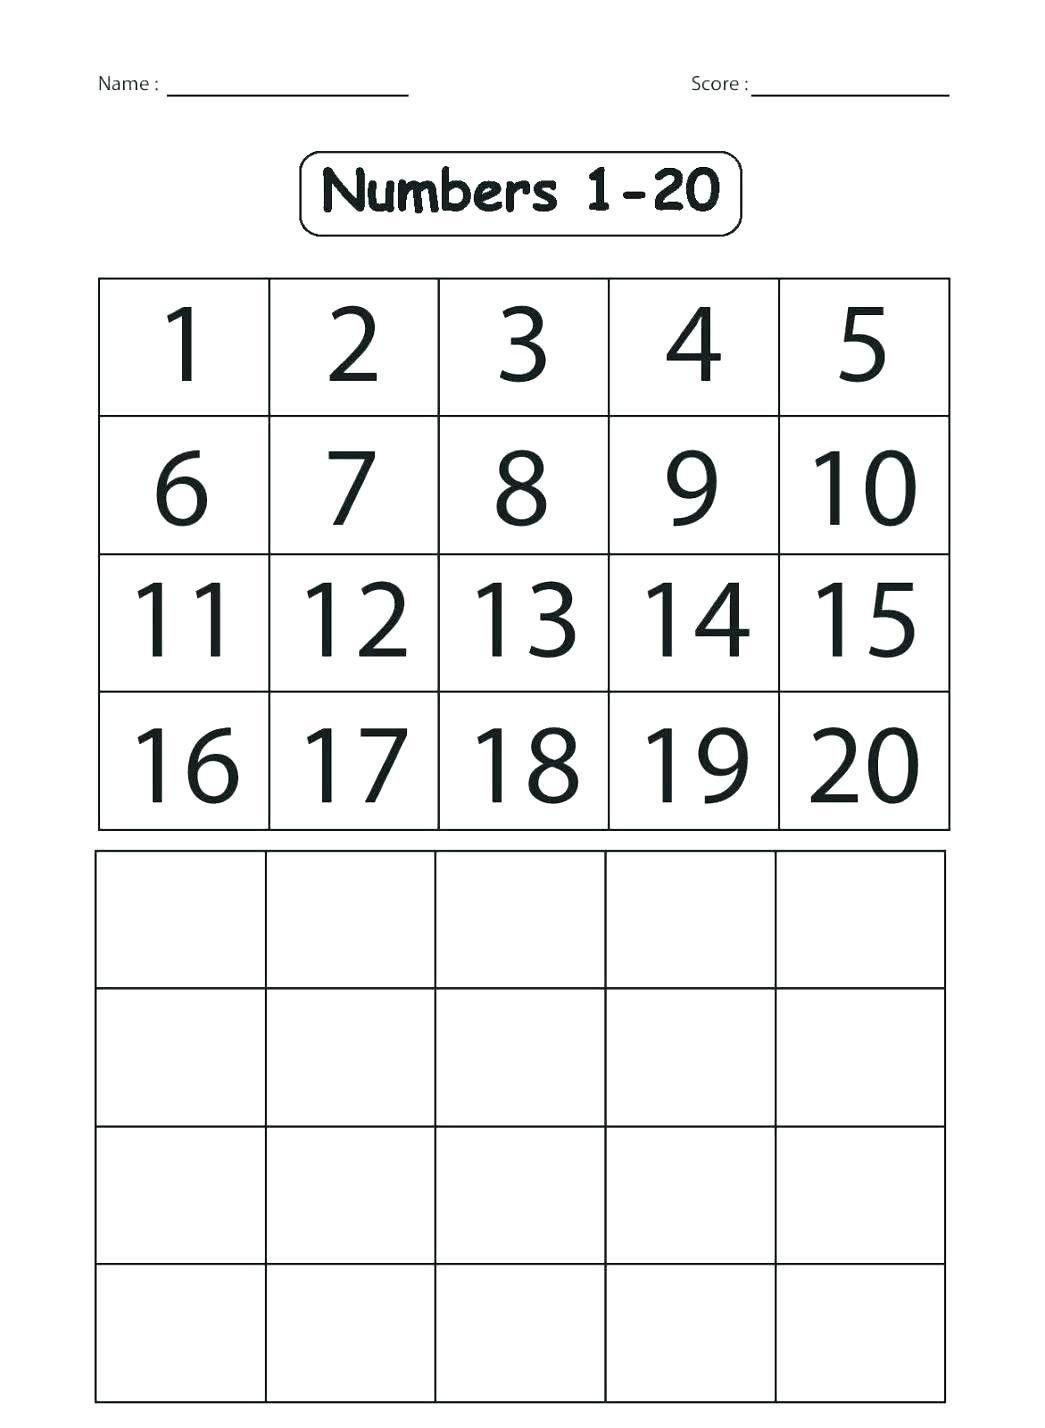 Number Recognition Worksheets 1 20 4 Numbers 1 20 Printable Free In 2020